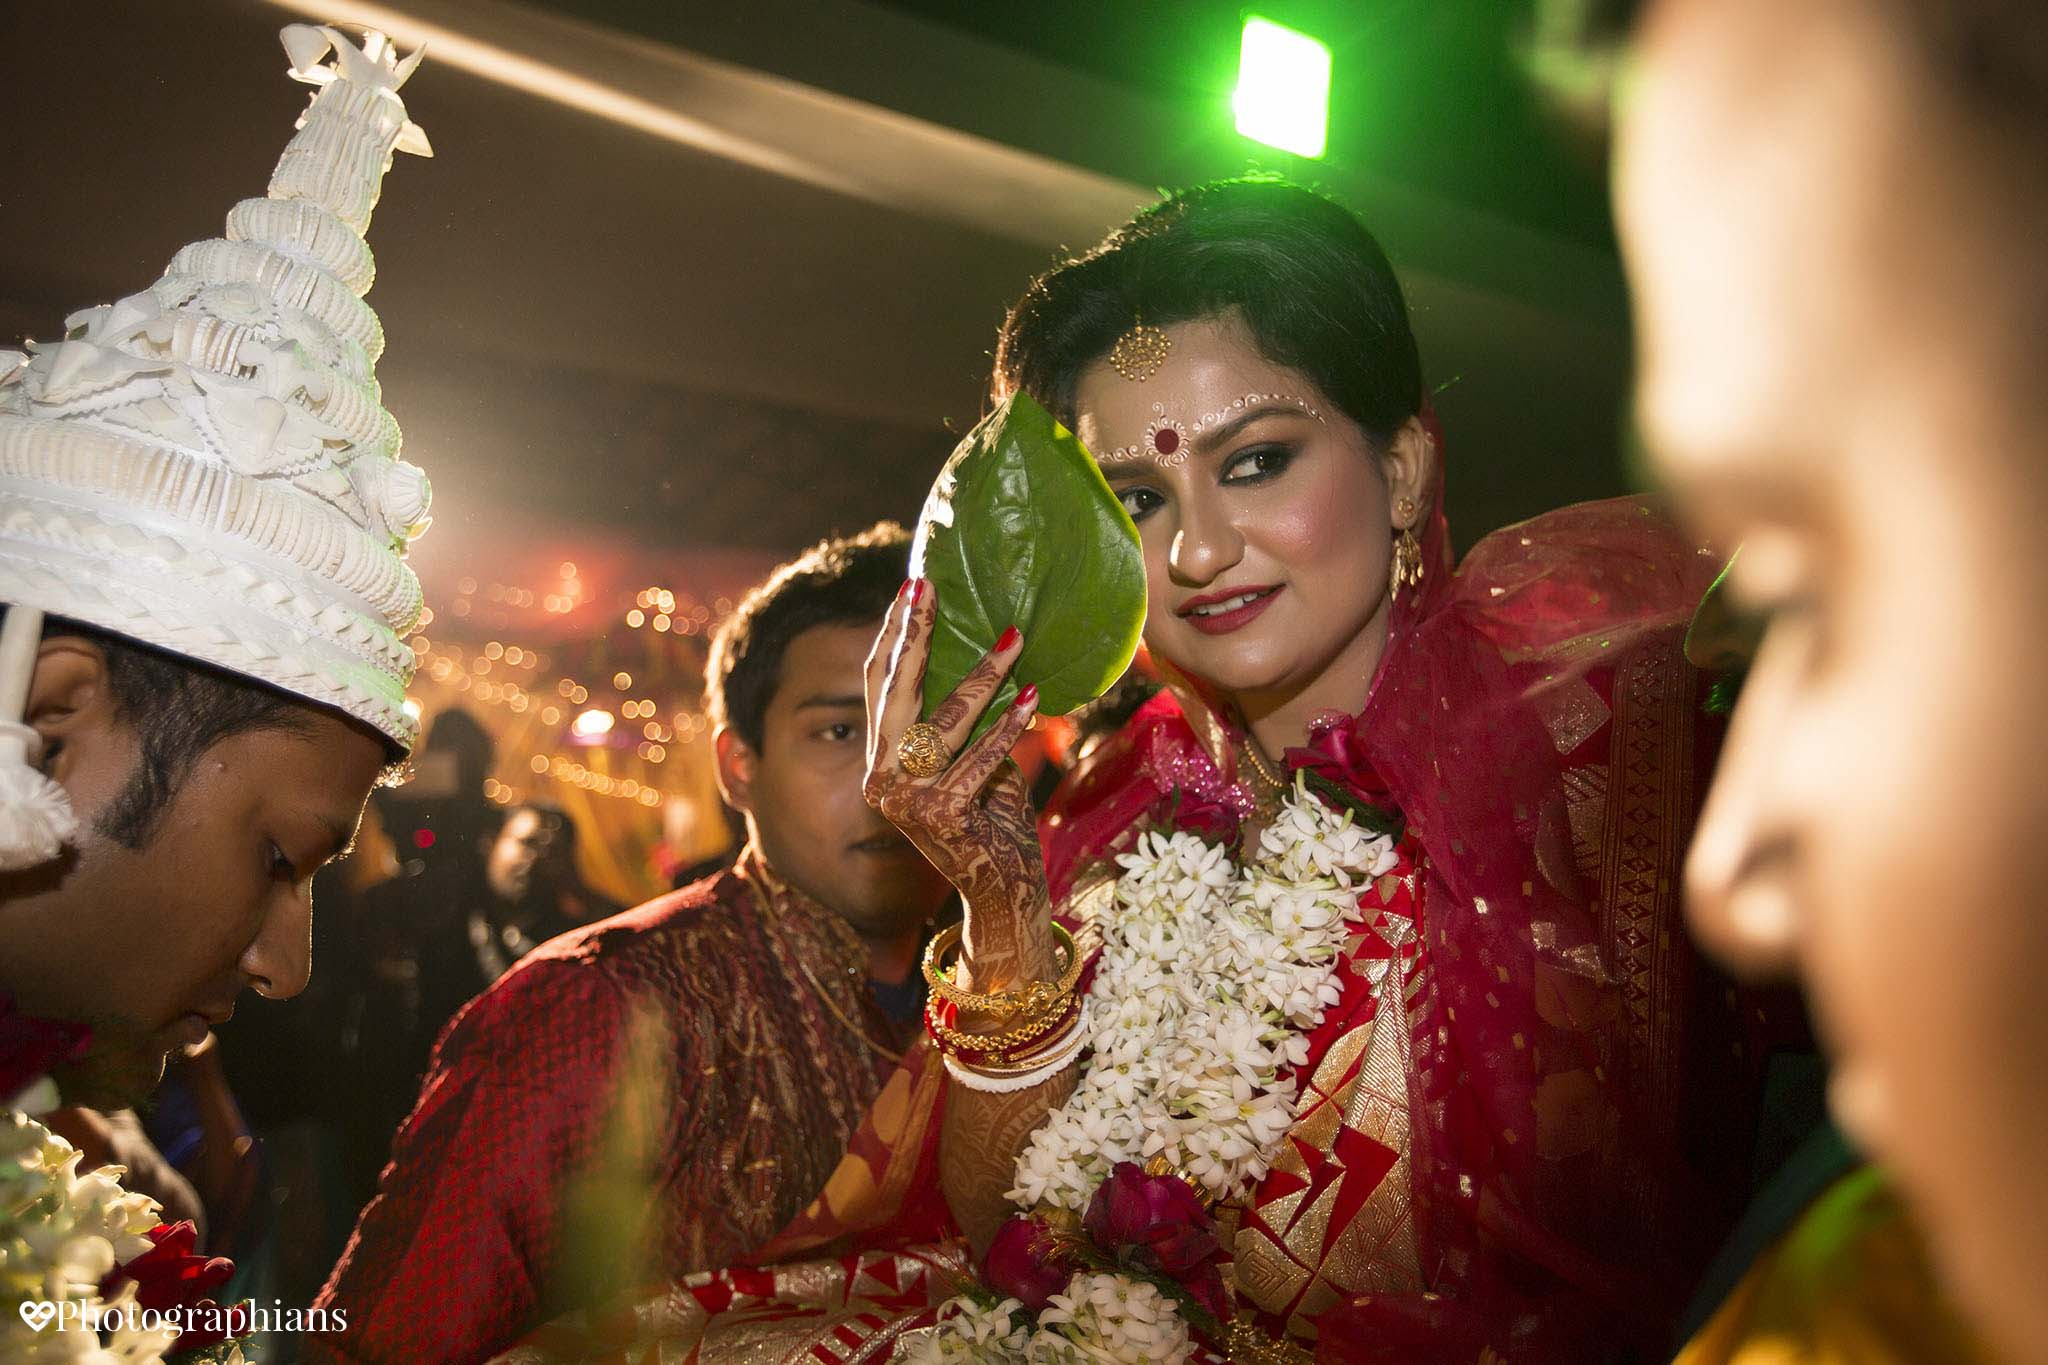 Photographians_Indian_Destination_Wedding_227